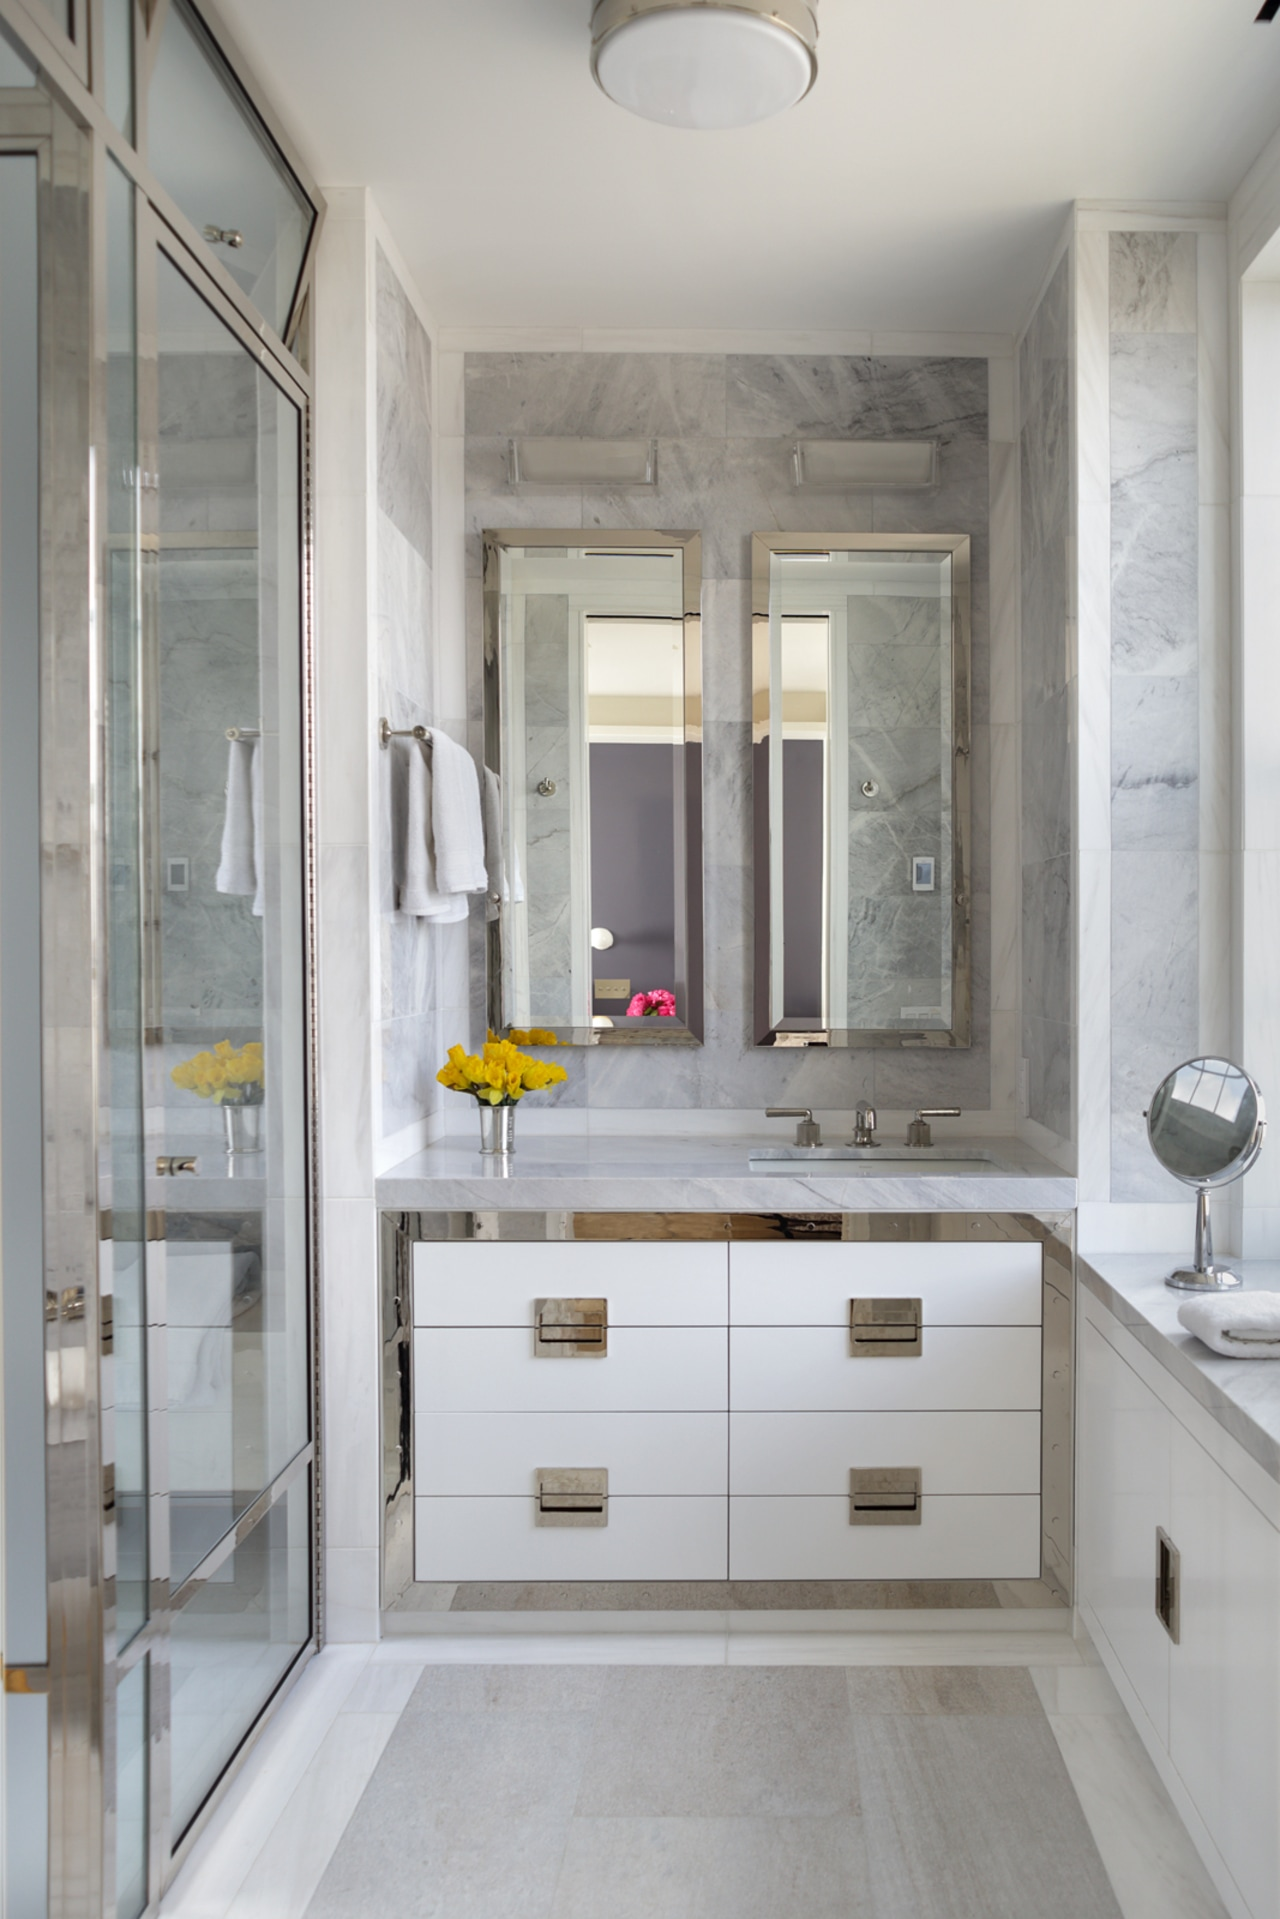 The master bath is a modern-abstracted take on